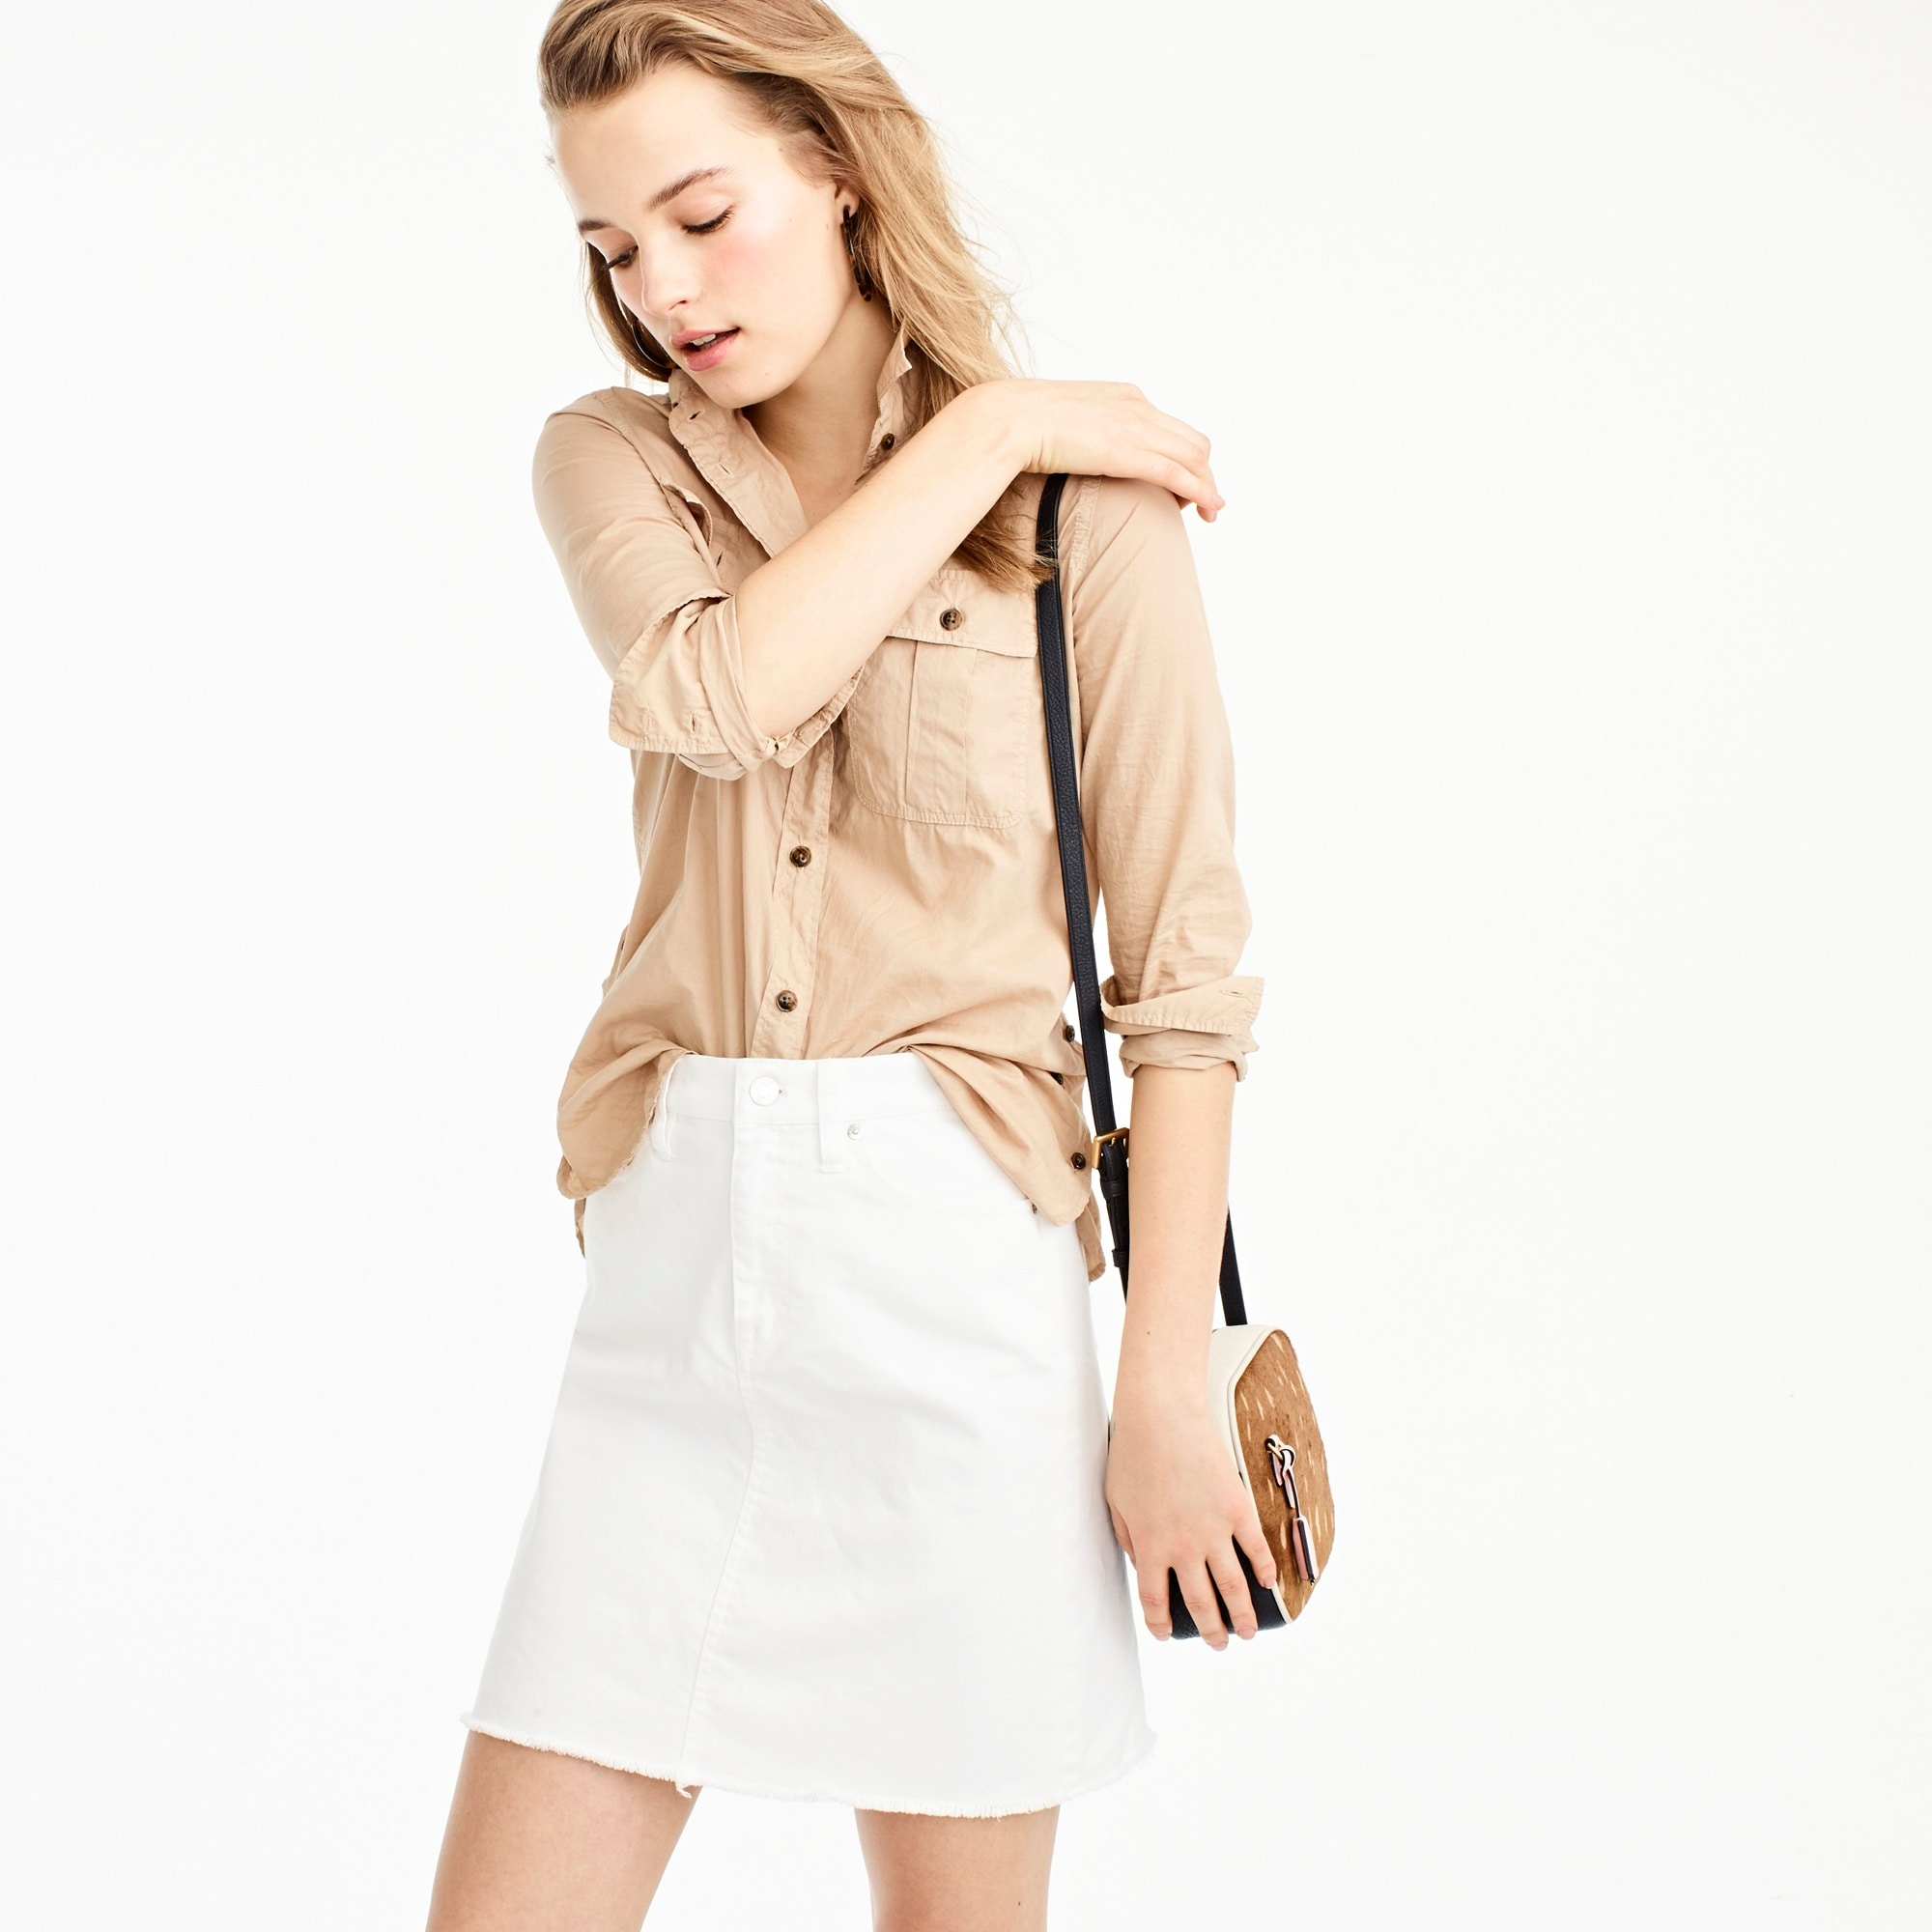 petite white denim skirt with raw hem : women denim